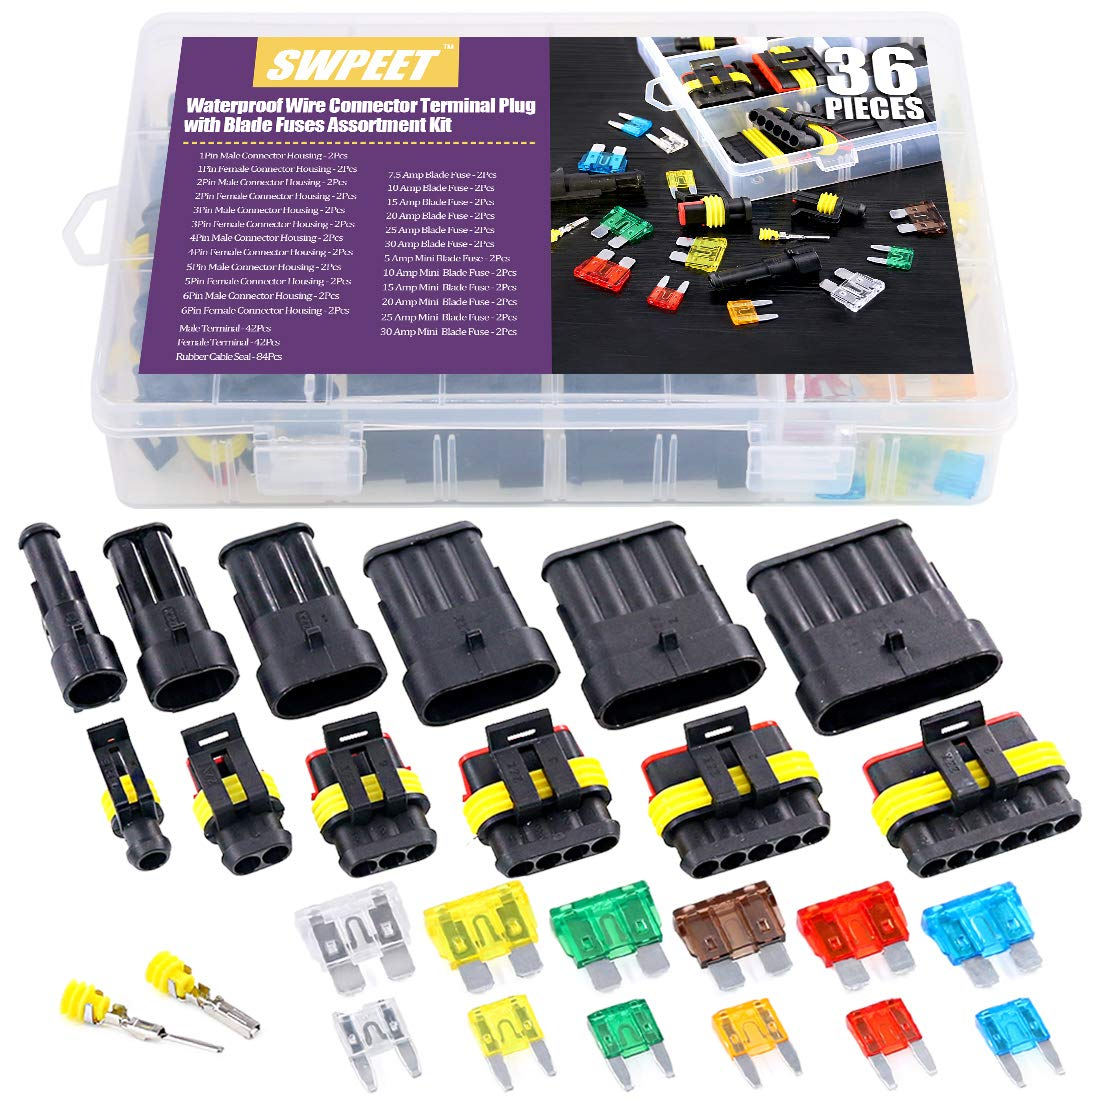 Swpeet 36Pcs Waterproof Electrical Wire Connector Kit, Including 1/2/3/4/5/6 Pin Waterproof Connector Plugs with Automotive Standard Blade Fuse and Mini Blade Fuses for Car Motorcycle Wire Connector